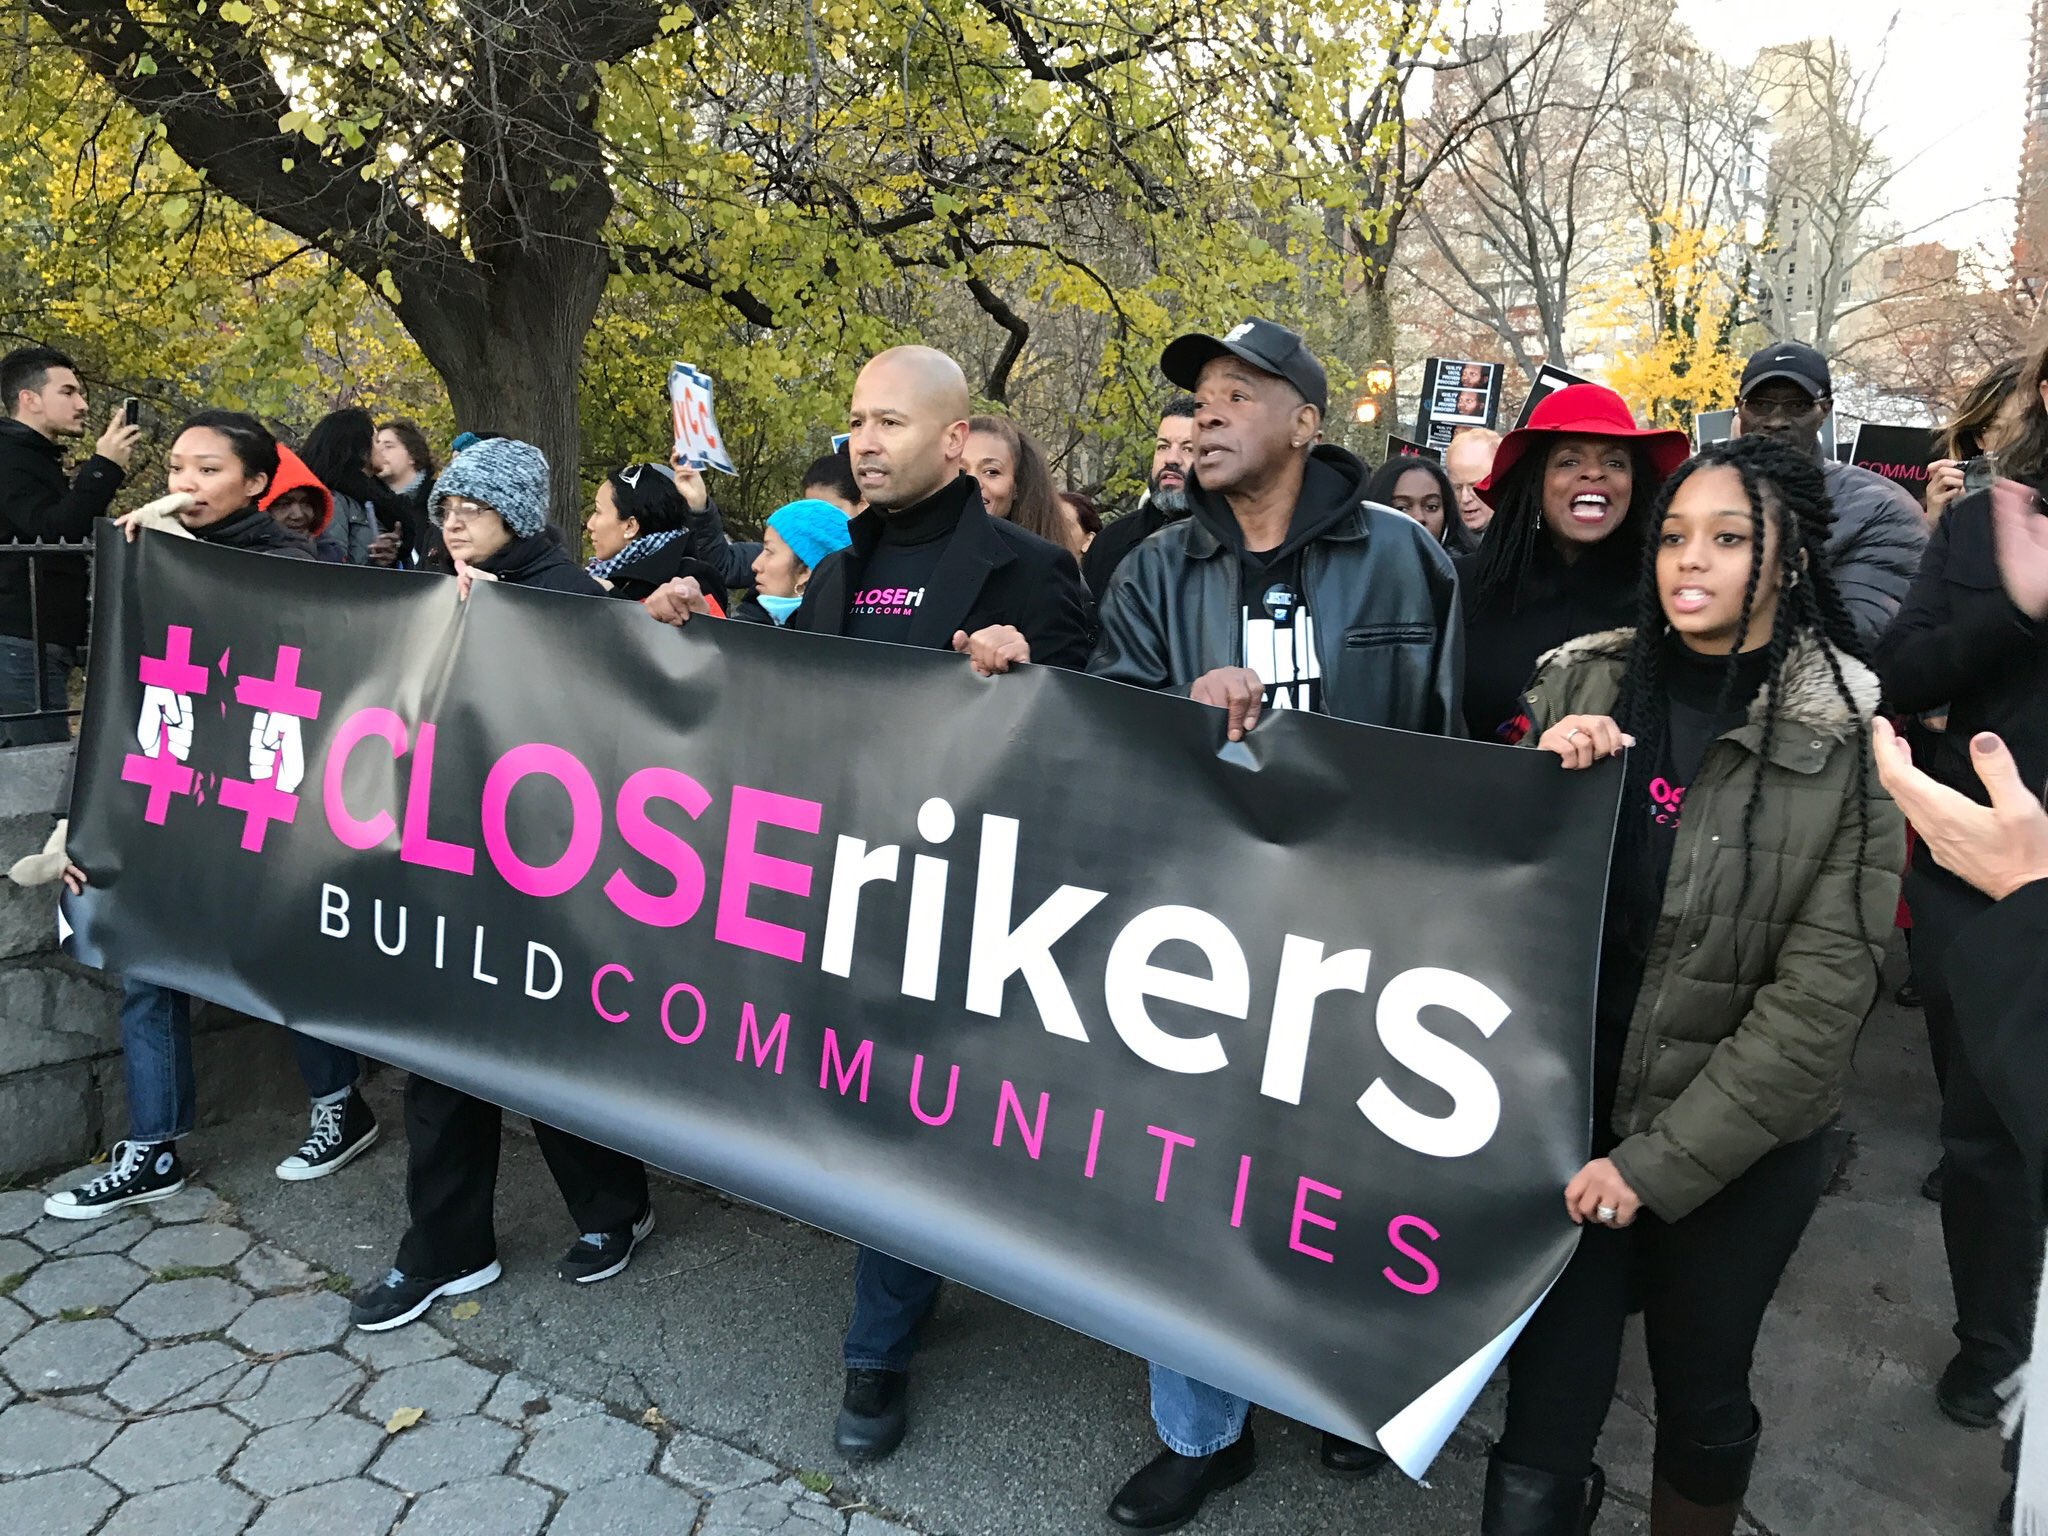 #CloseRikers! VOCAL's @carlstubbs carrying the banner at today's vigil outside Gracie Mansion. @JustLeadersUSA @katalcenter https://t.co/elIHzASnVH